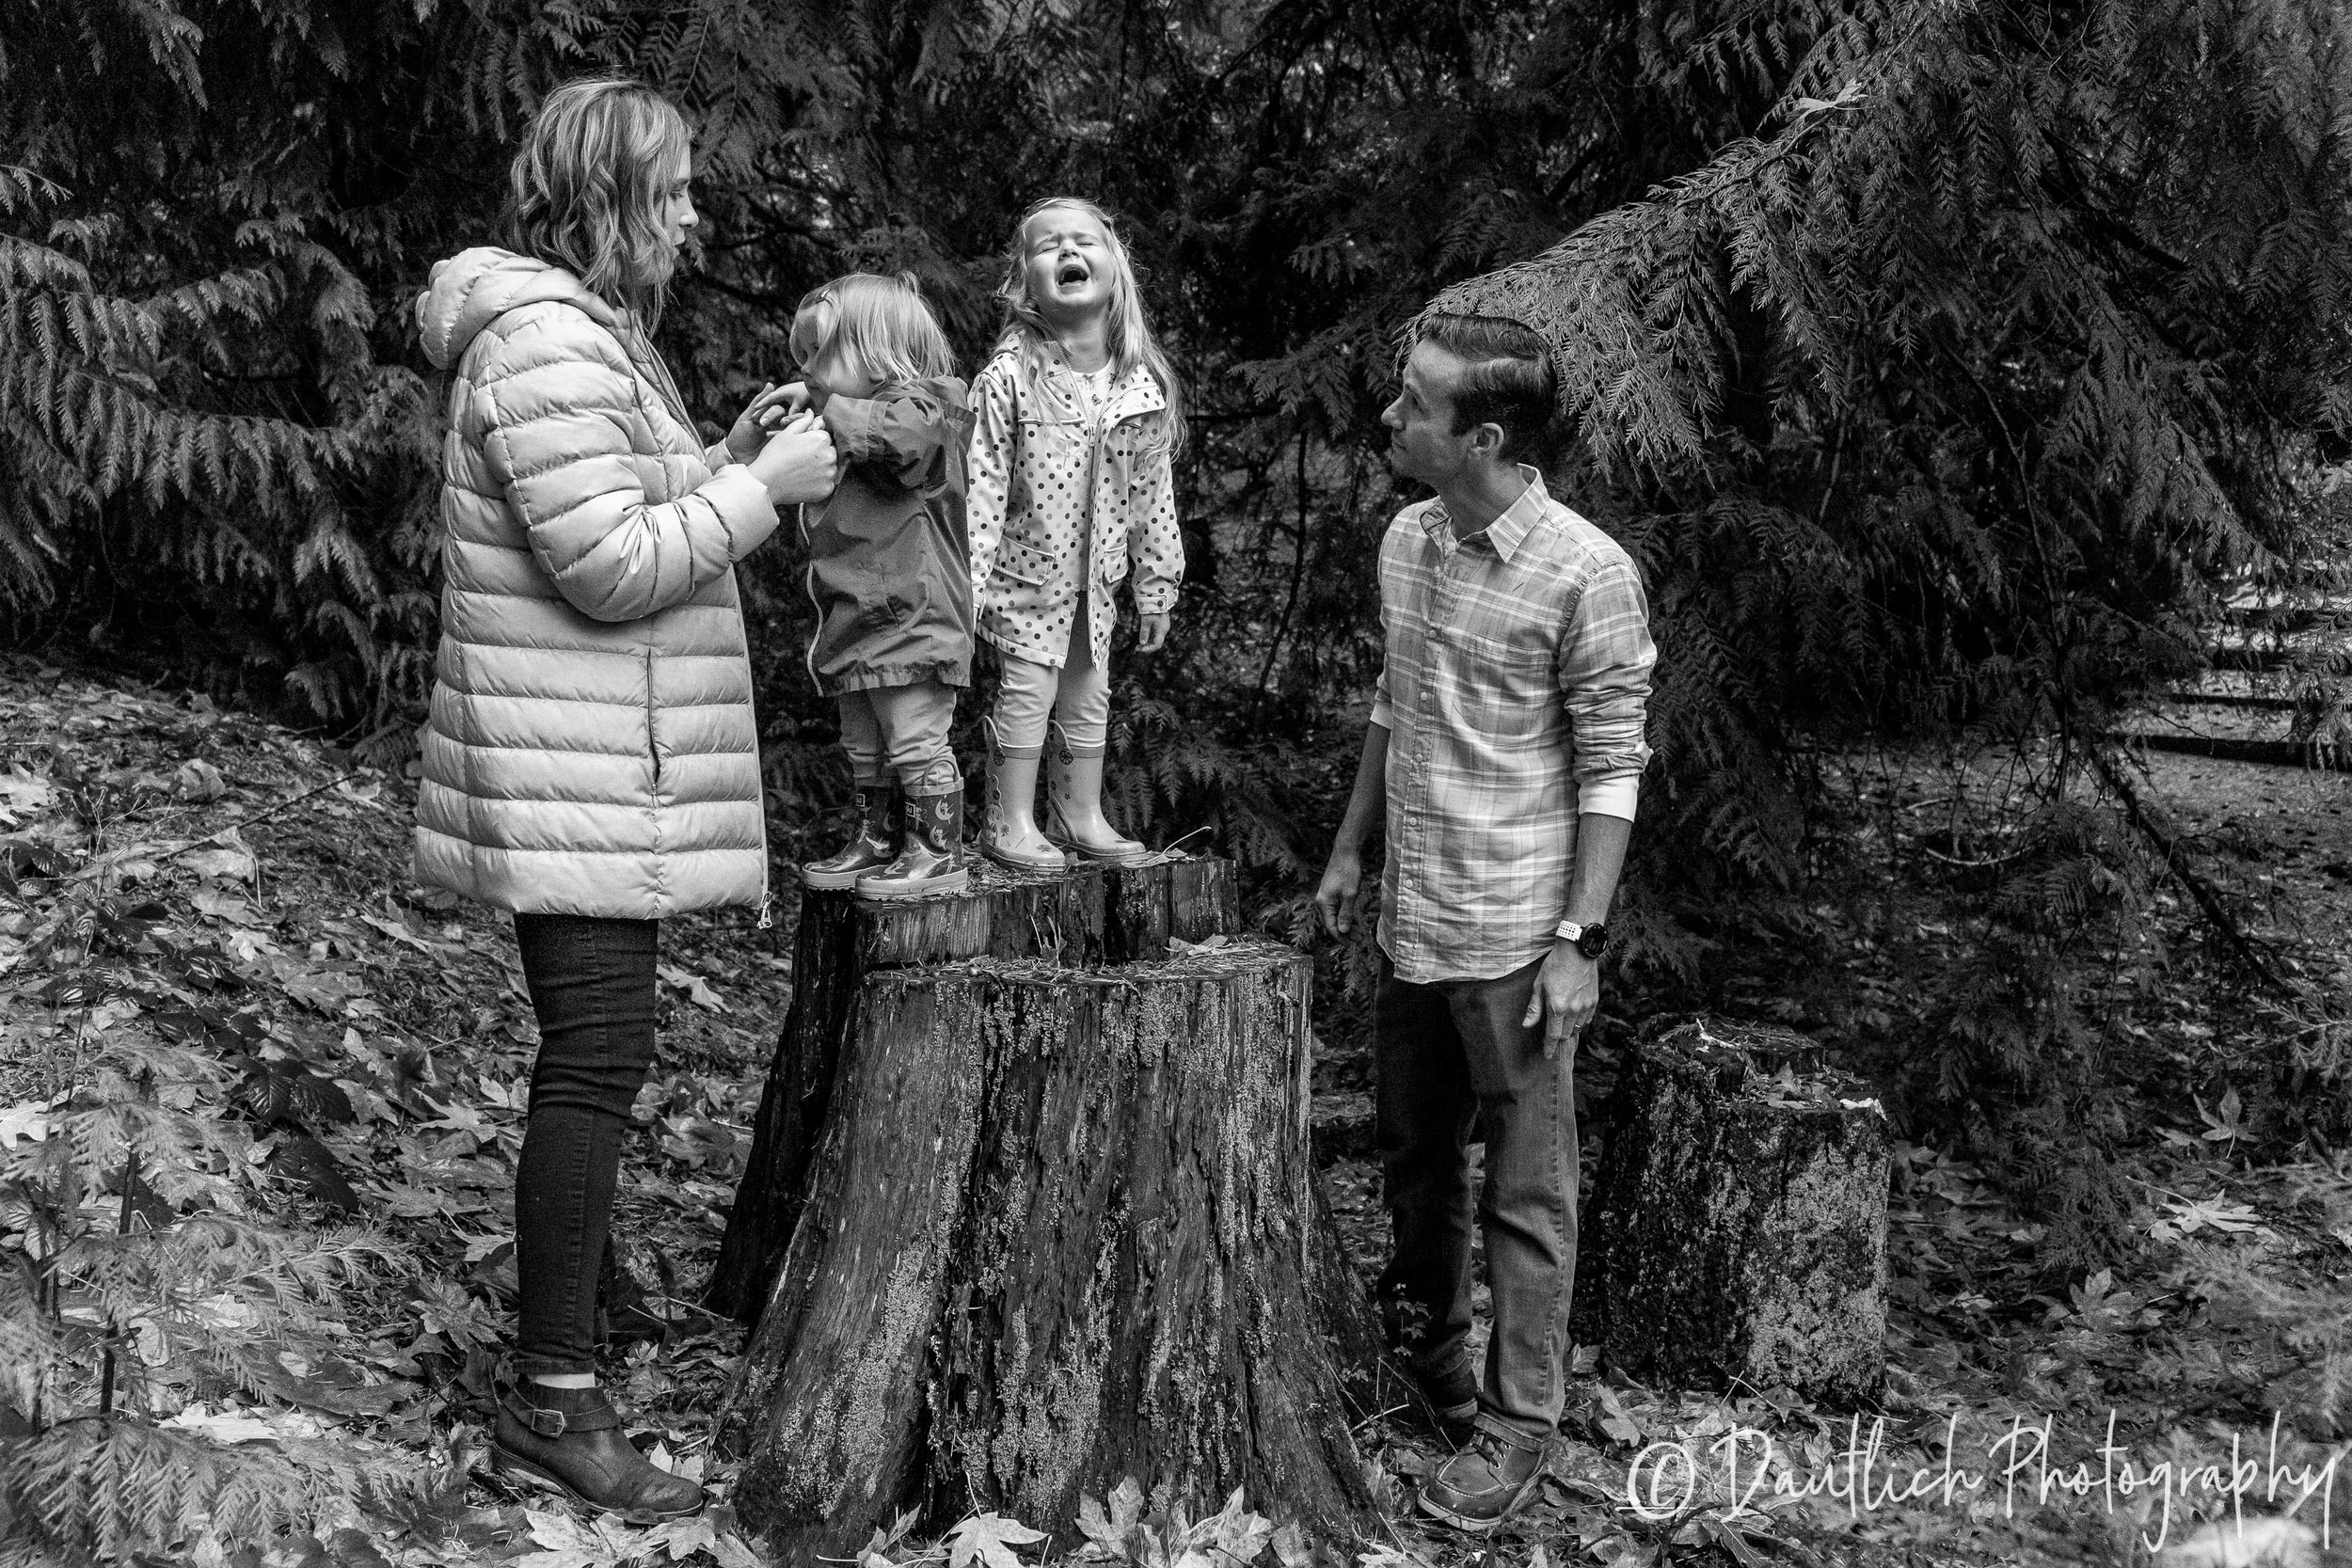 The Ringer family stops at a log during our walk in the woods behind their new home. Delaney has a little tantrum for just a moment while dad stares as her.